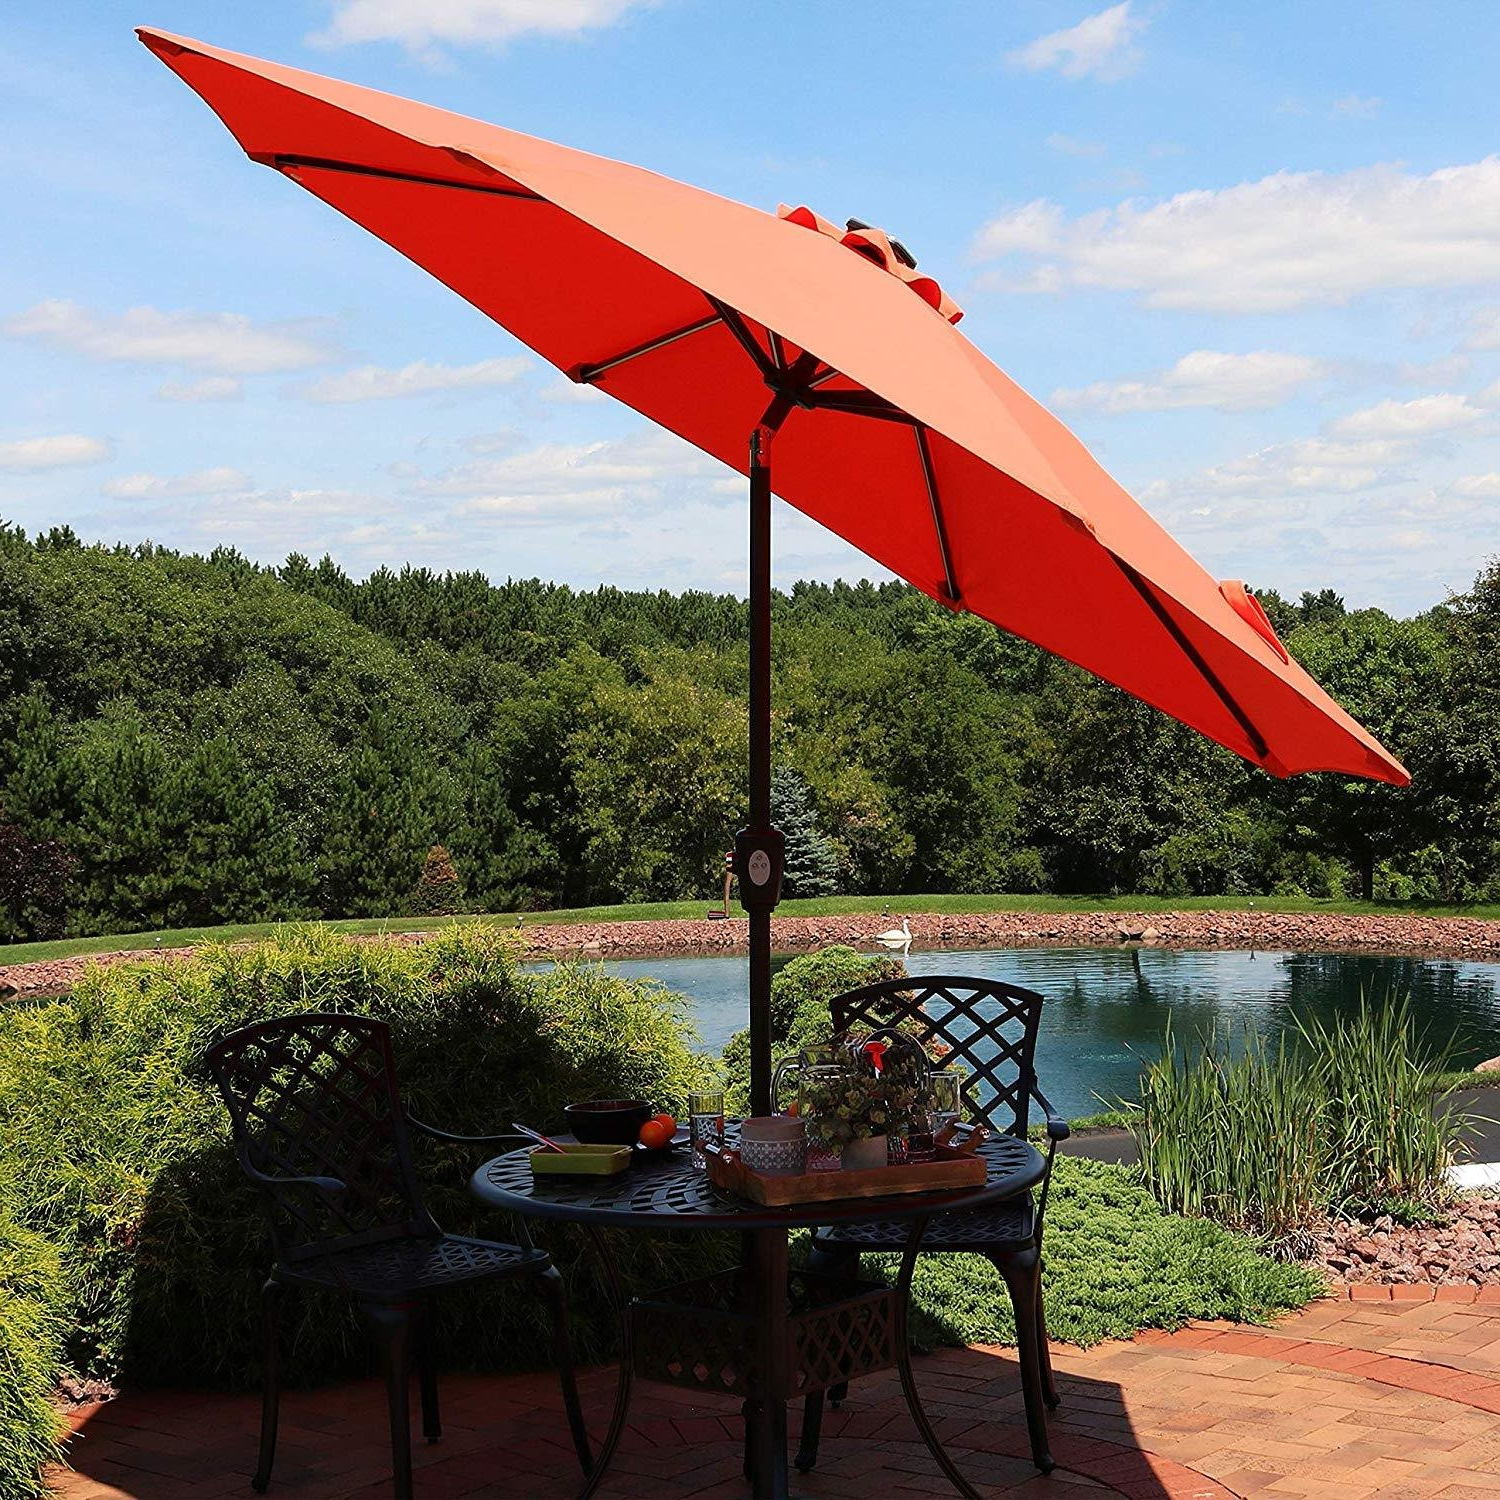 Ludie Aluminum 9' Market Umbrella Intended For Popular Gainsborough Market Umbrellas (Gallery 8 of 20)